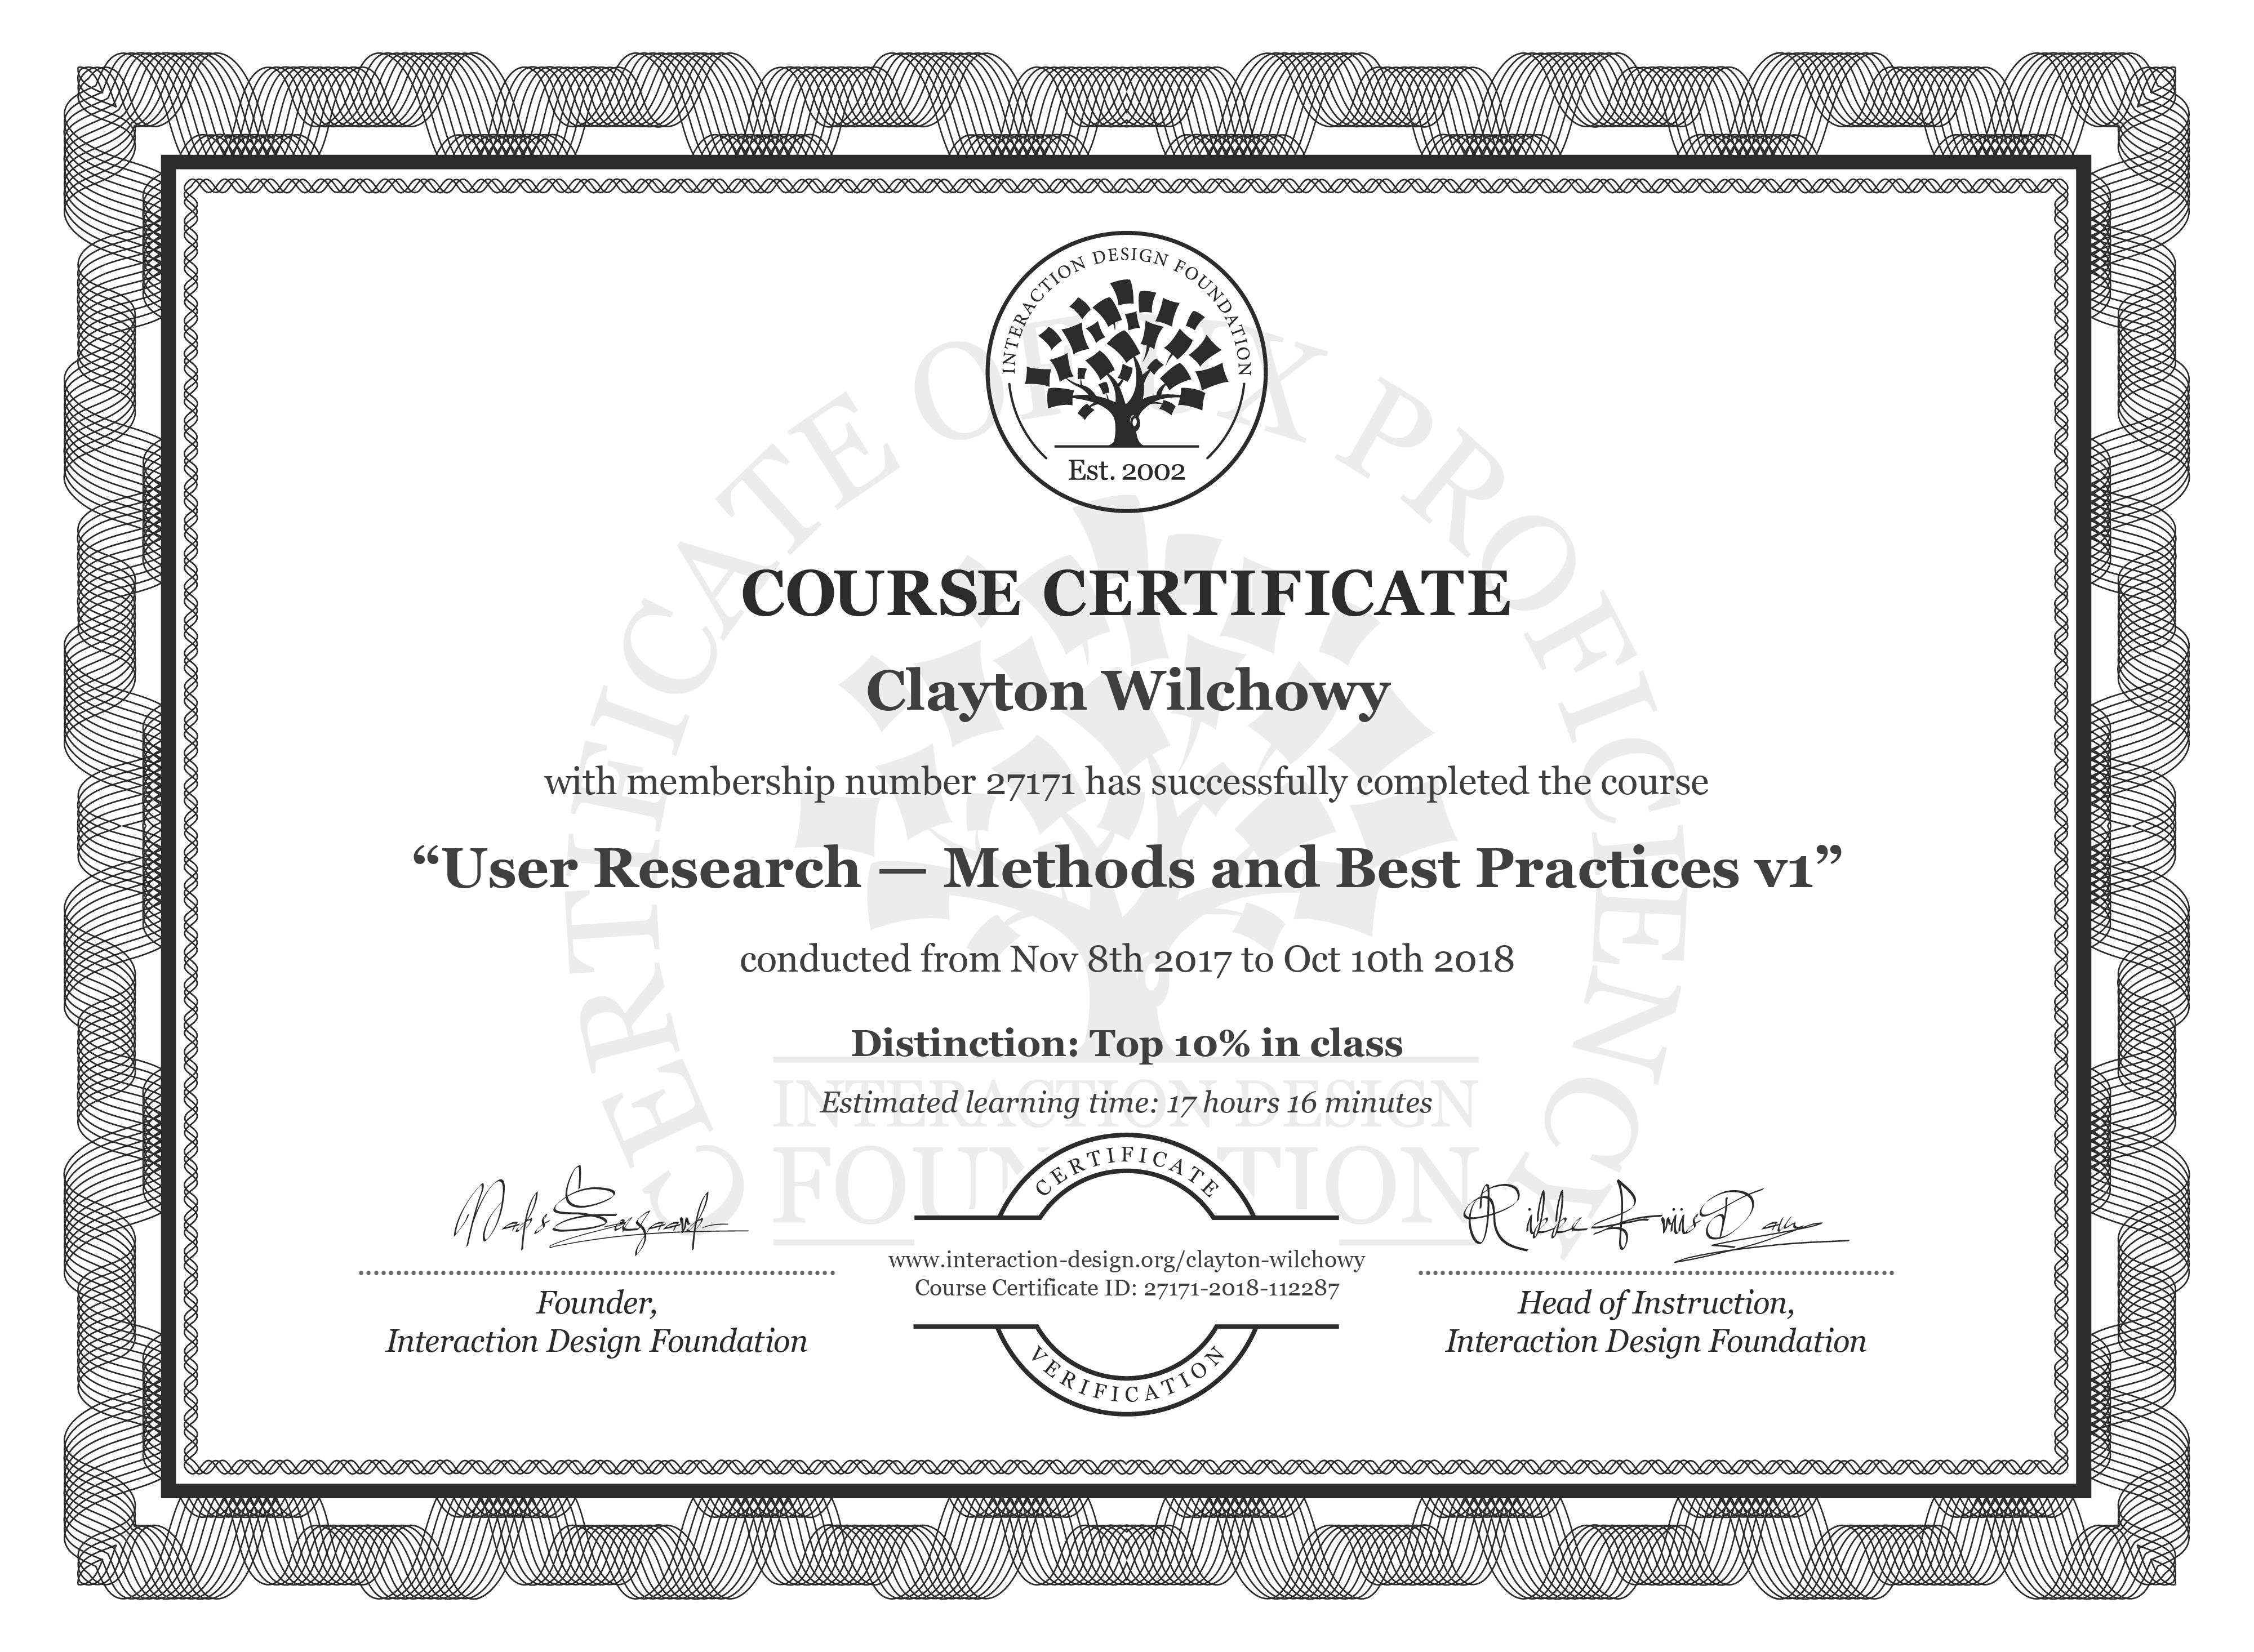 Clayton Wilchowy: Course Certificate - User Research — Methods and Best Practices